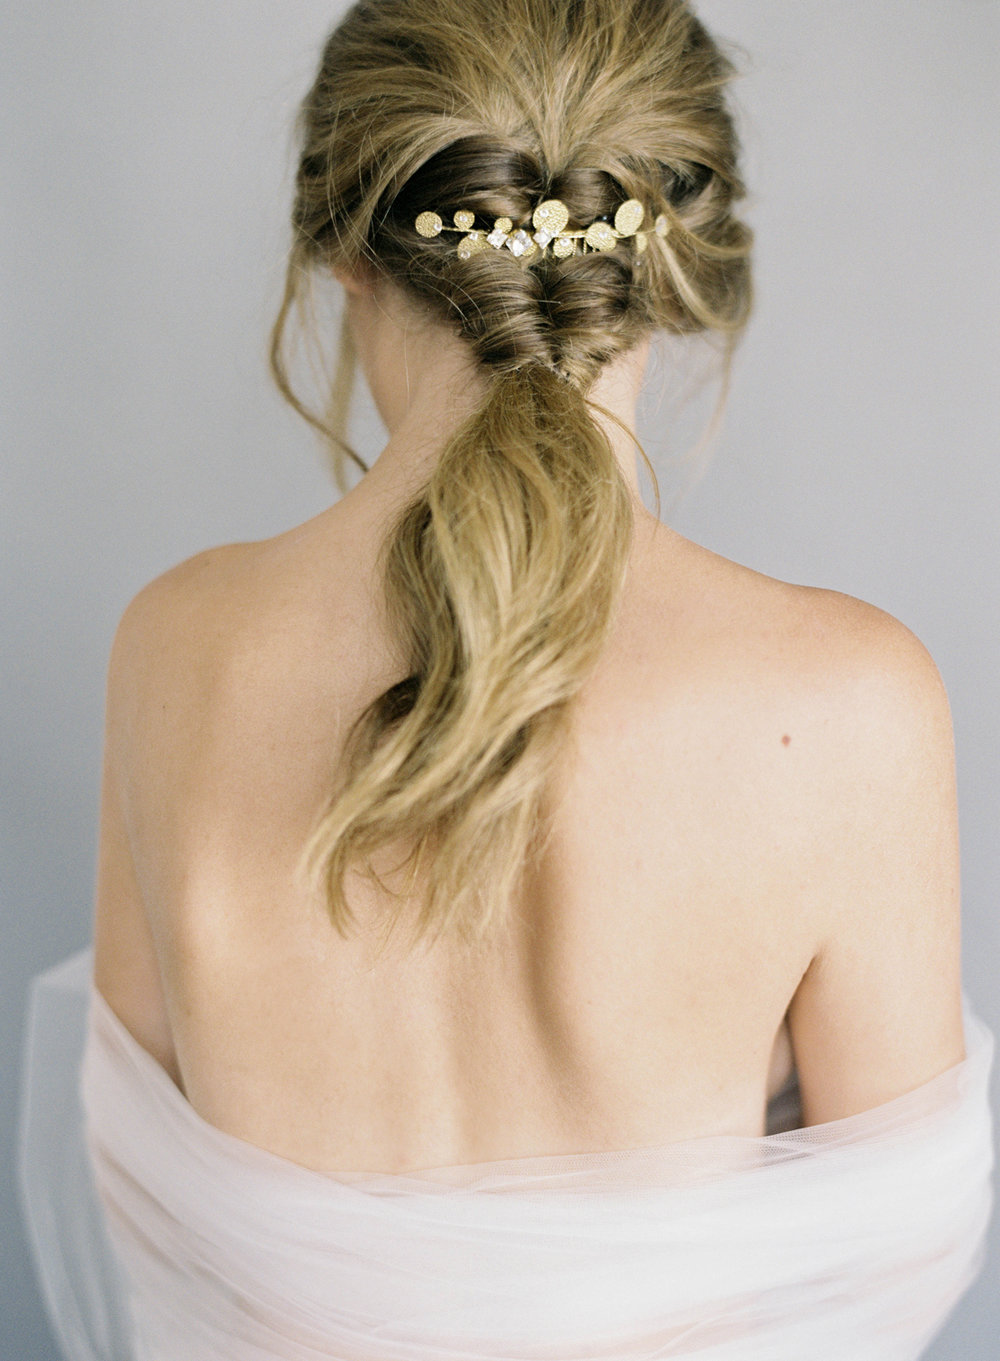 Hushed Commotion, Jen Huang 2017, Carson, modern gold comb, ponytail.jpg